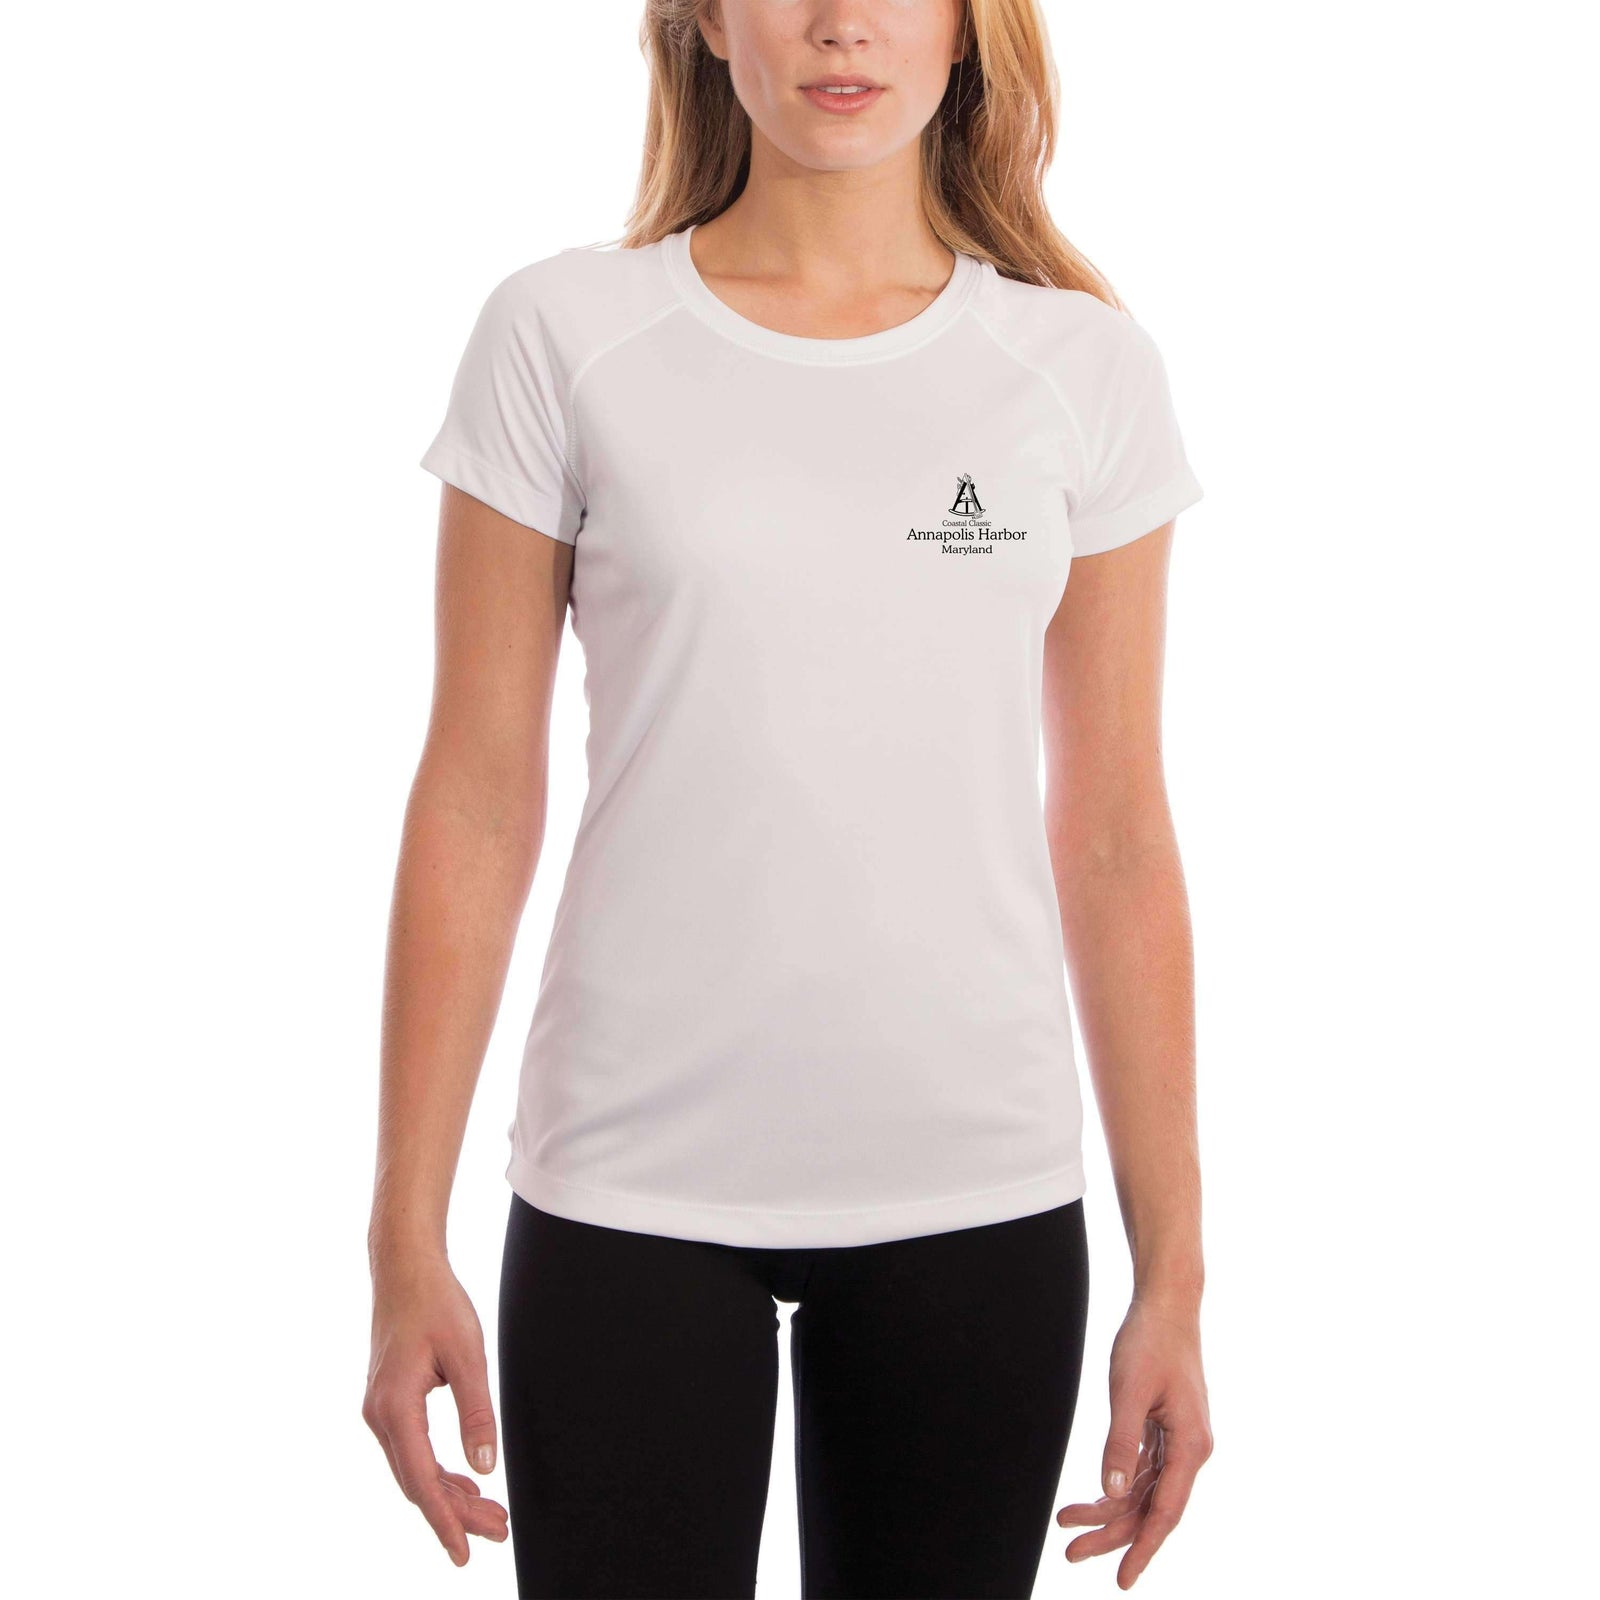 Coastal Classics Annapolis Harbor Womens Upf 50+ Uv/sun Protection Performance T-Shirt Shirt